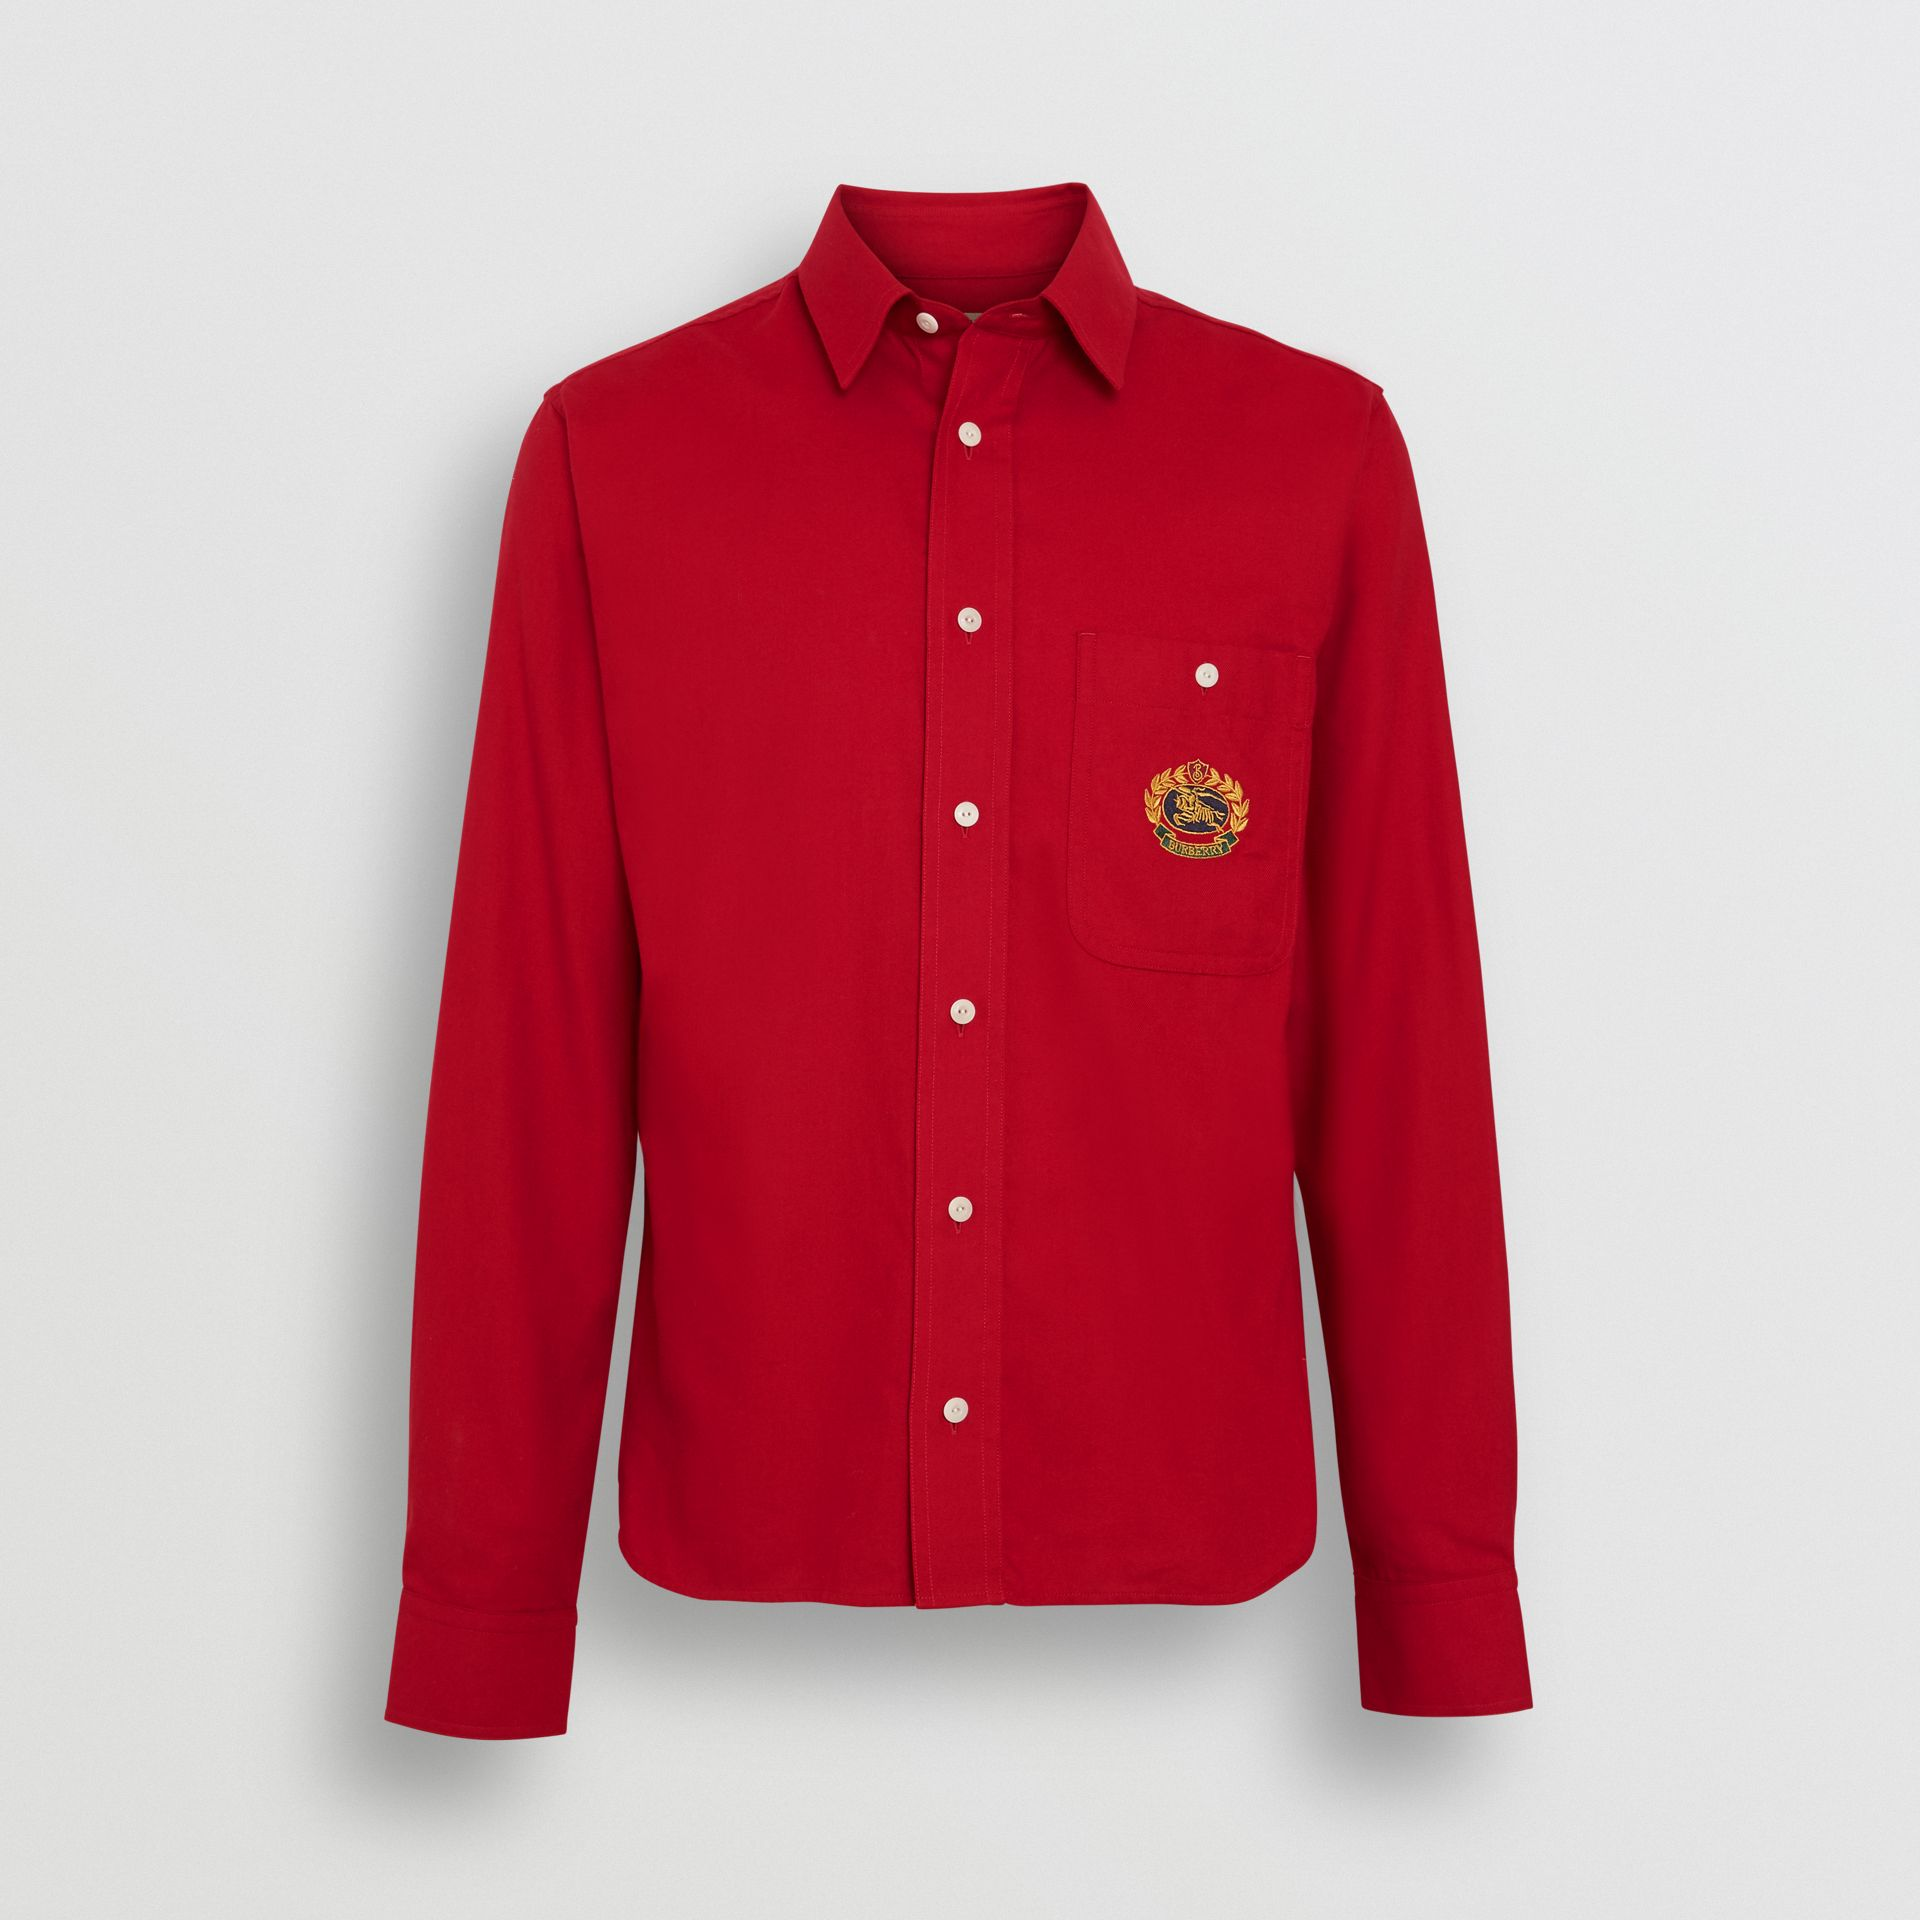 Burberry Poppy Red Embroidered Crest Flannel Shirt